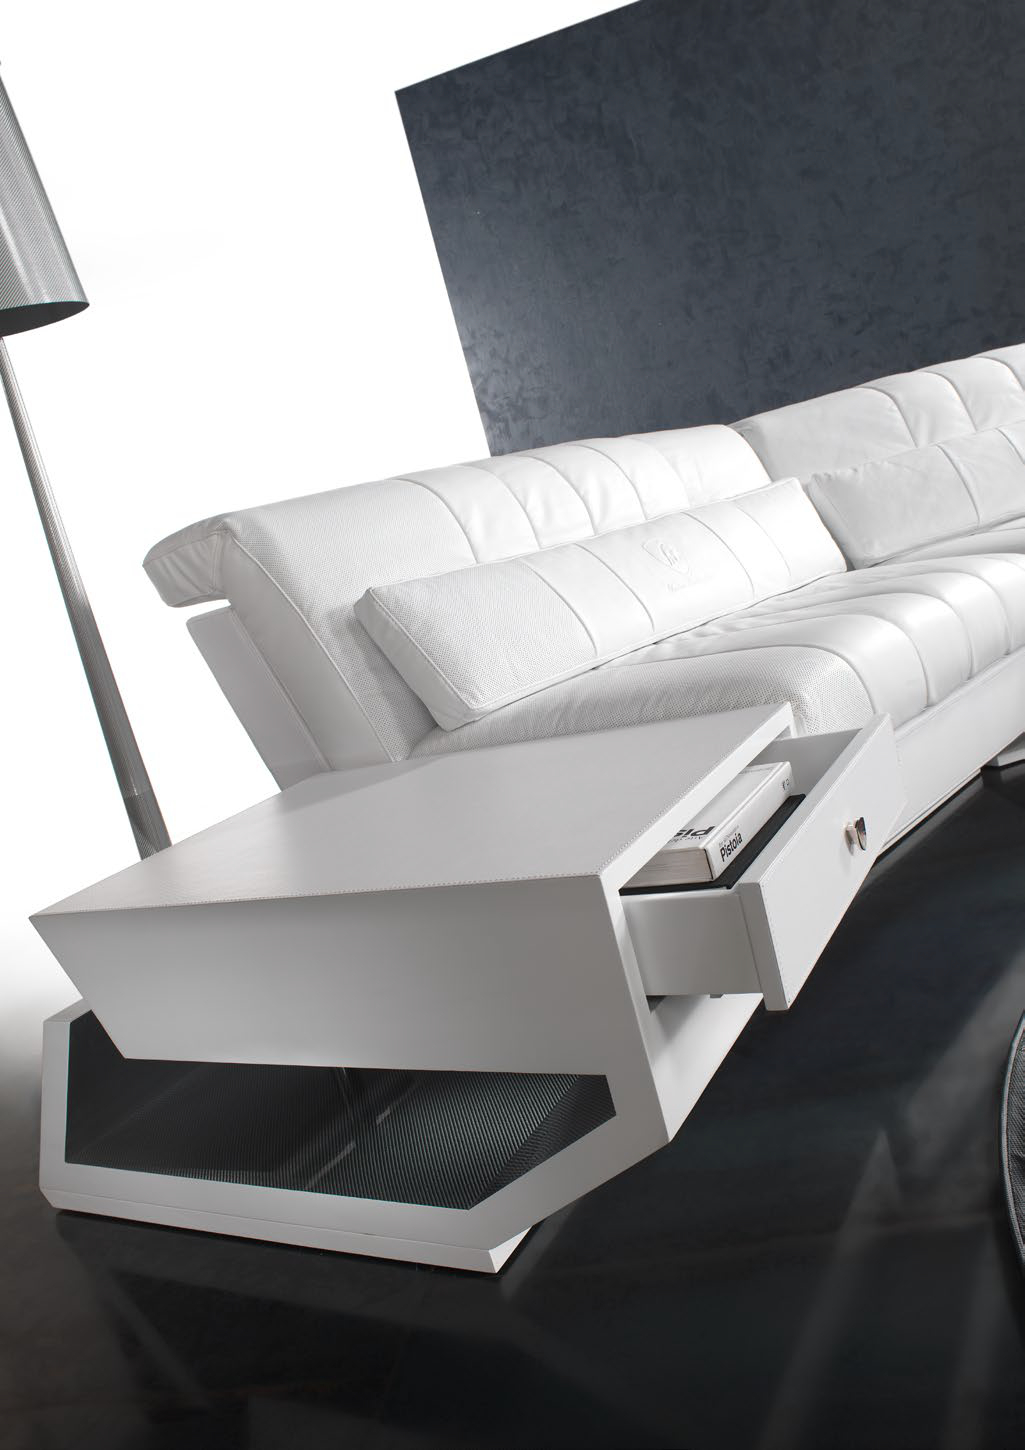 Imola veneer coffee table imola collection by tonino lamborghini imola veneer coffee table imola collection by tonino lamborghini casa geotapseo Gallery